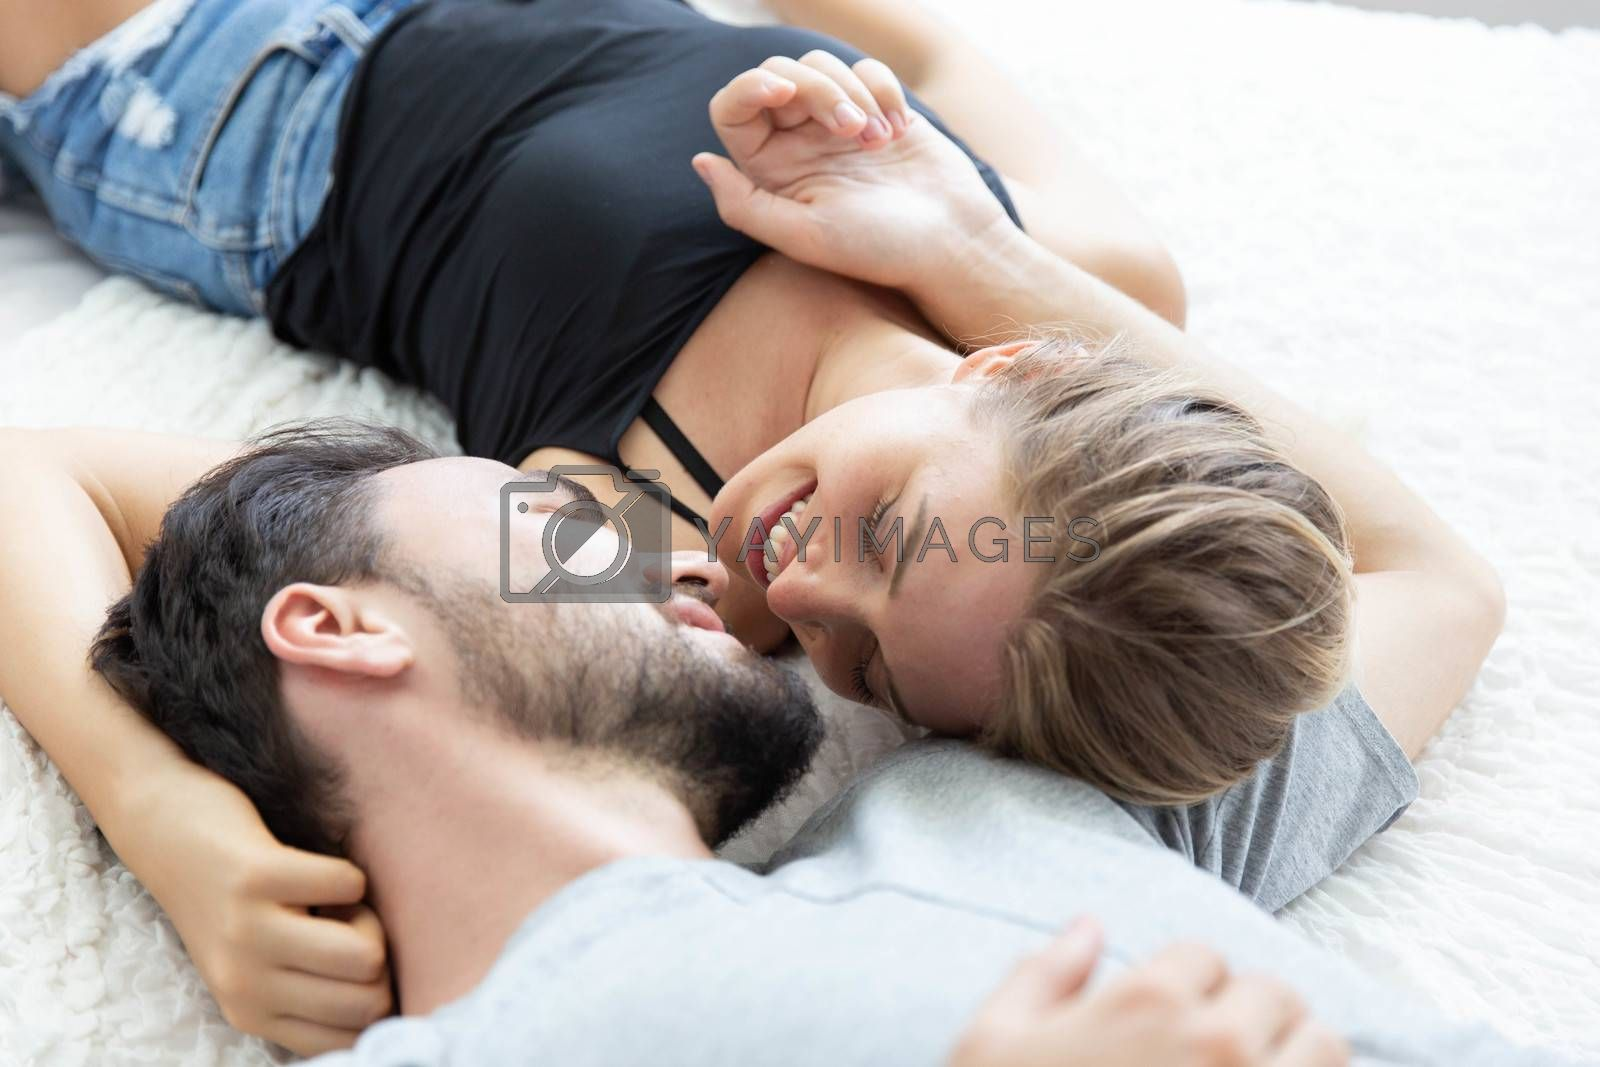 Lovely happy couple in love, smile, and kiss each other on their bed in the bedroom